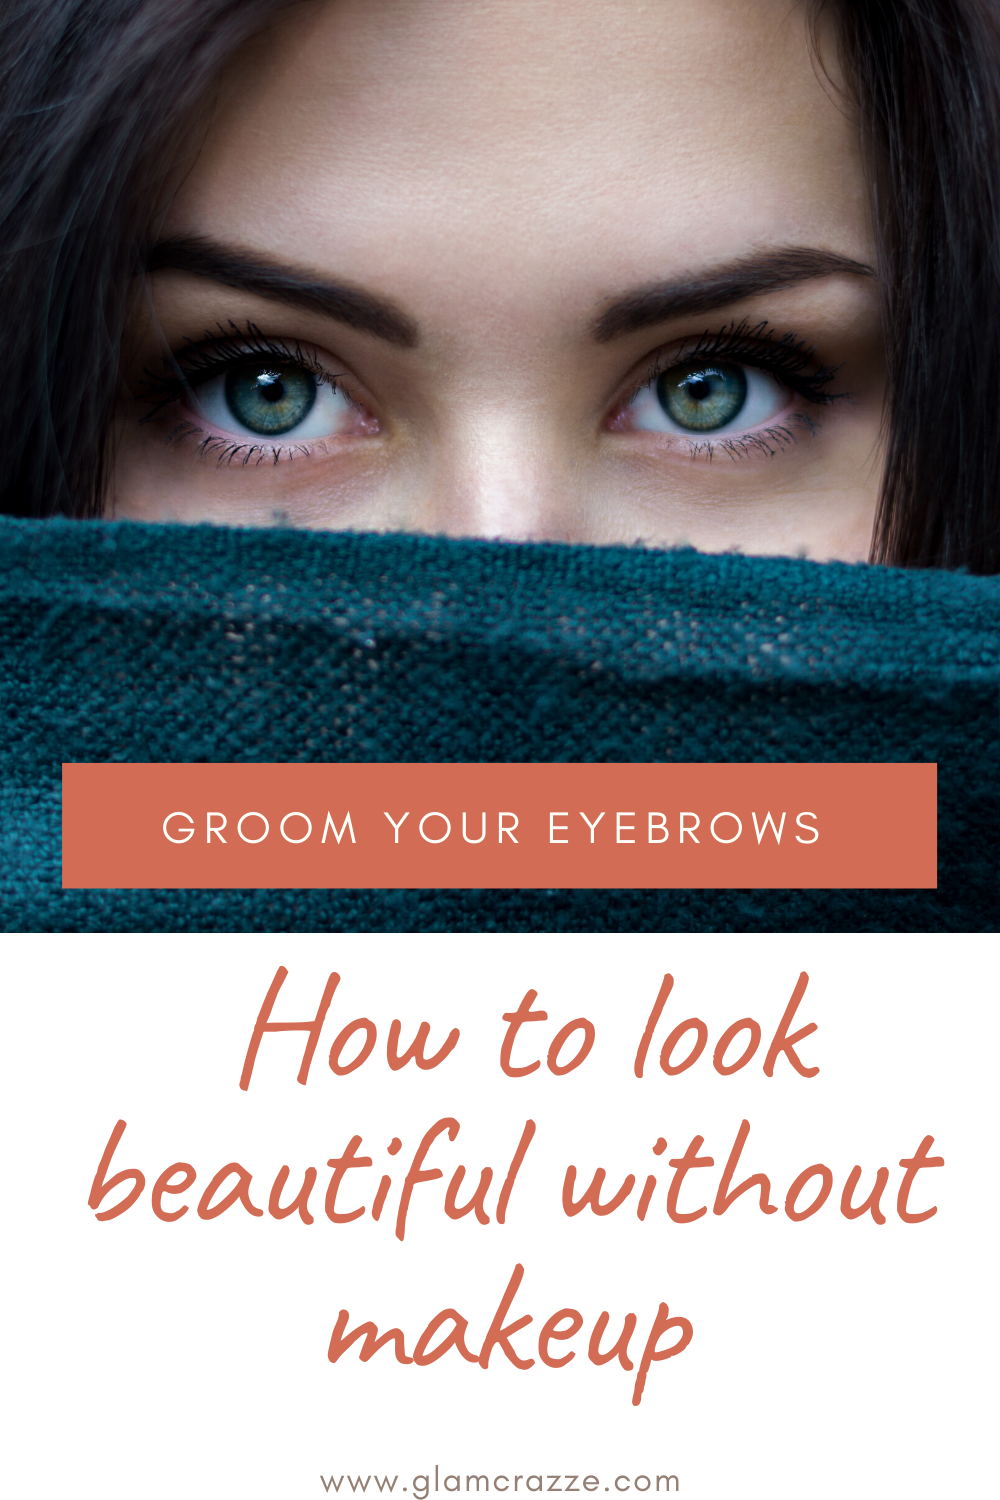 How to look beautiful without makeup groom your eyebrows well